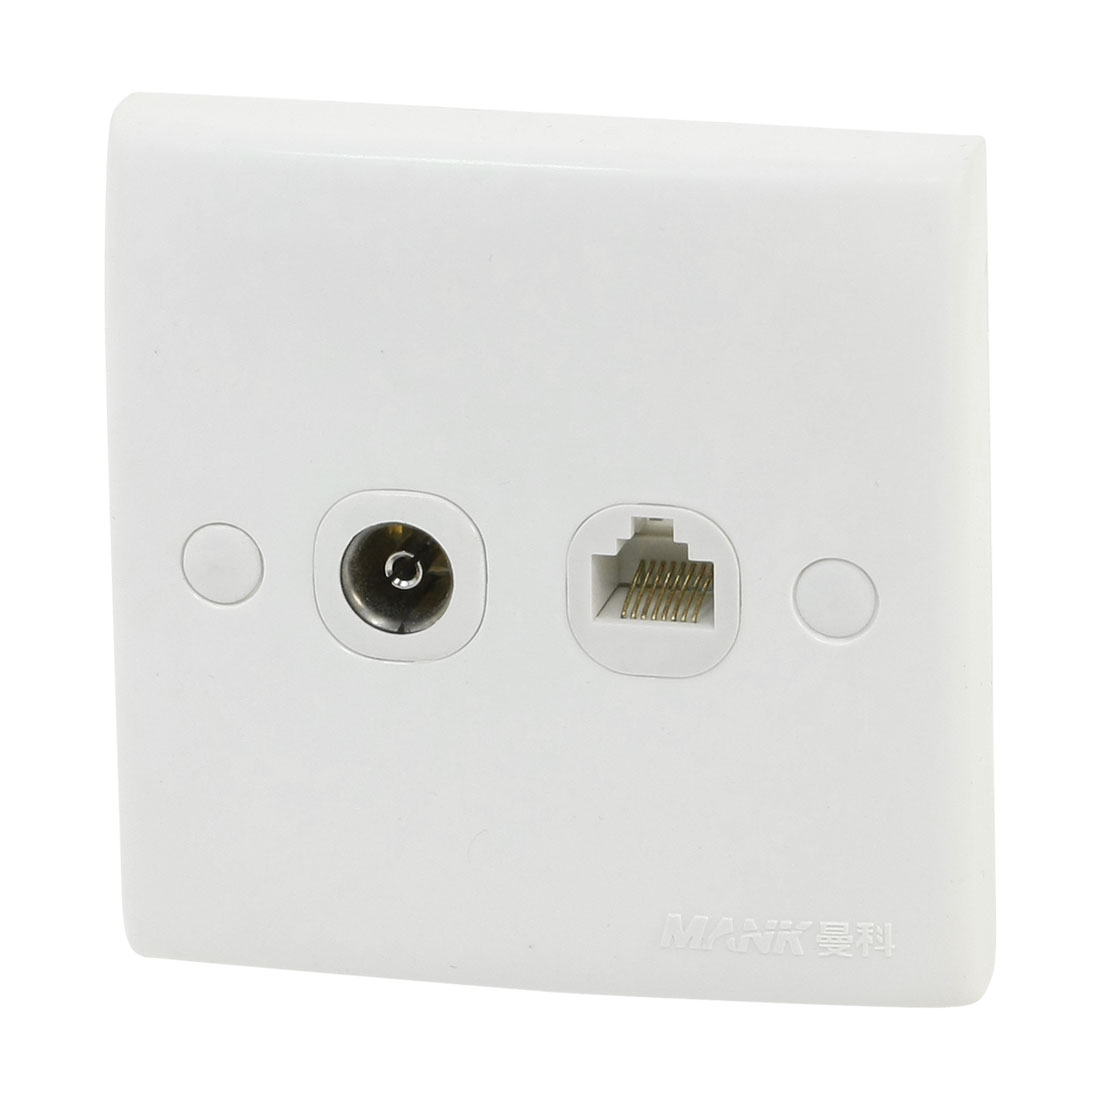 RJ11 6P4C TV Television Socket Double Outlet Wall Mount Plate Panel